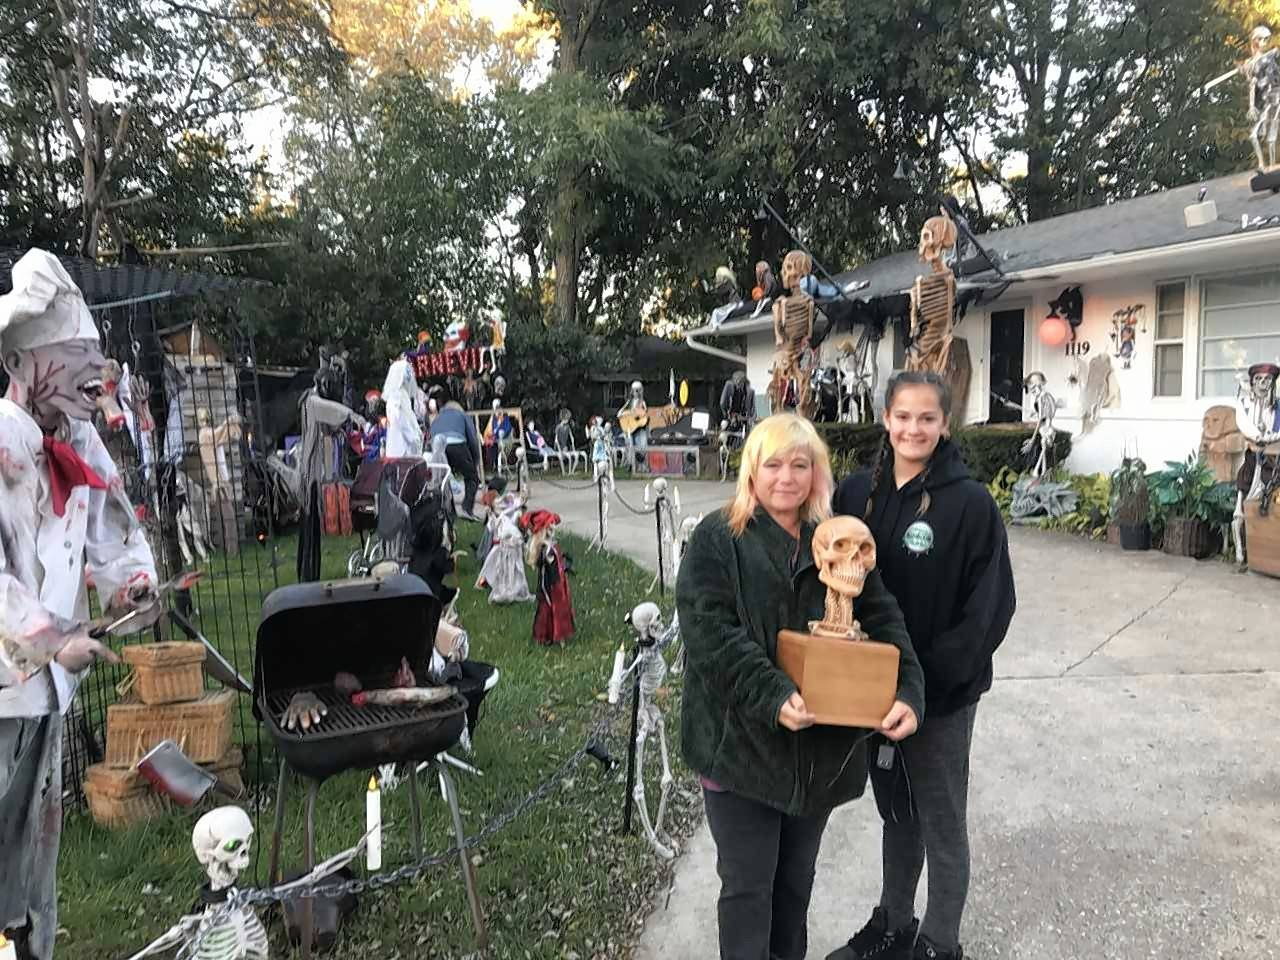 The family always went all out in their Halloween decorations, and the ashes of Michael Podlin, who died of cancer last year, are in a box topped with a skull with light-up red eyes, held by his widow, TammySue Margalit, and their daughter, Ginger.